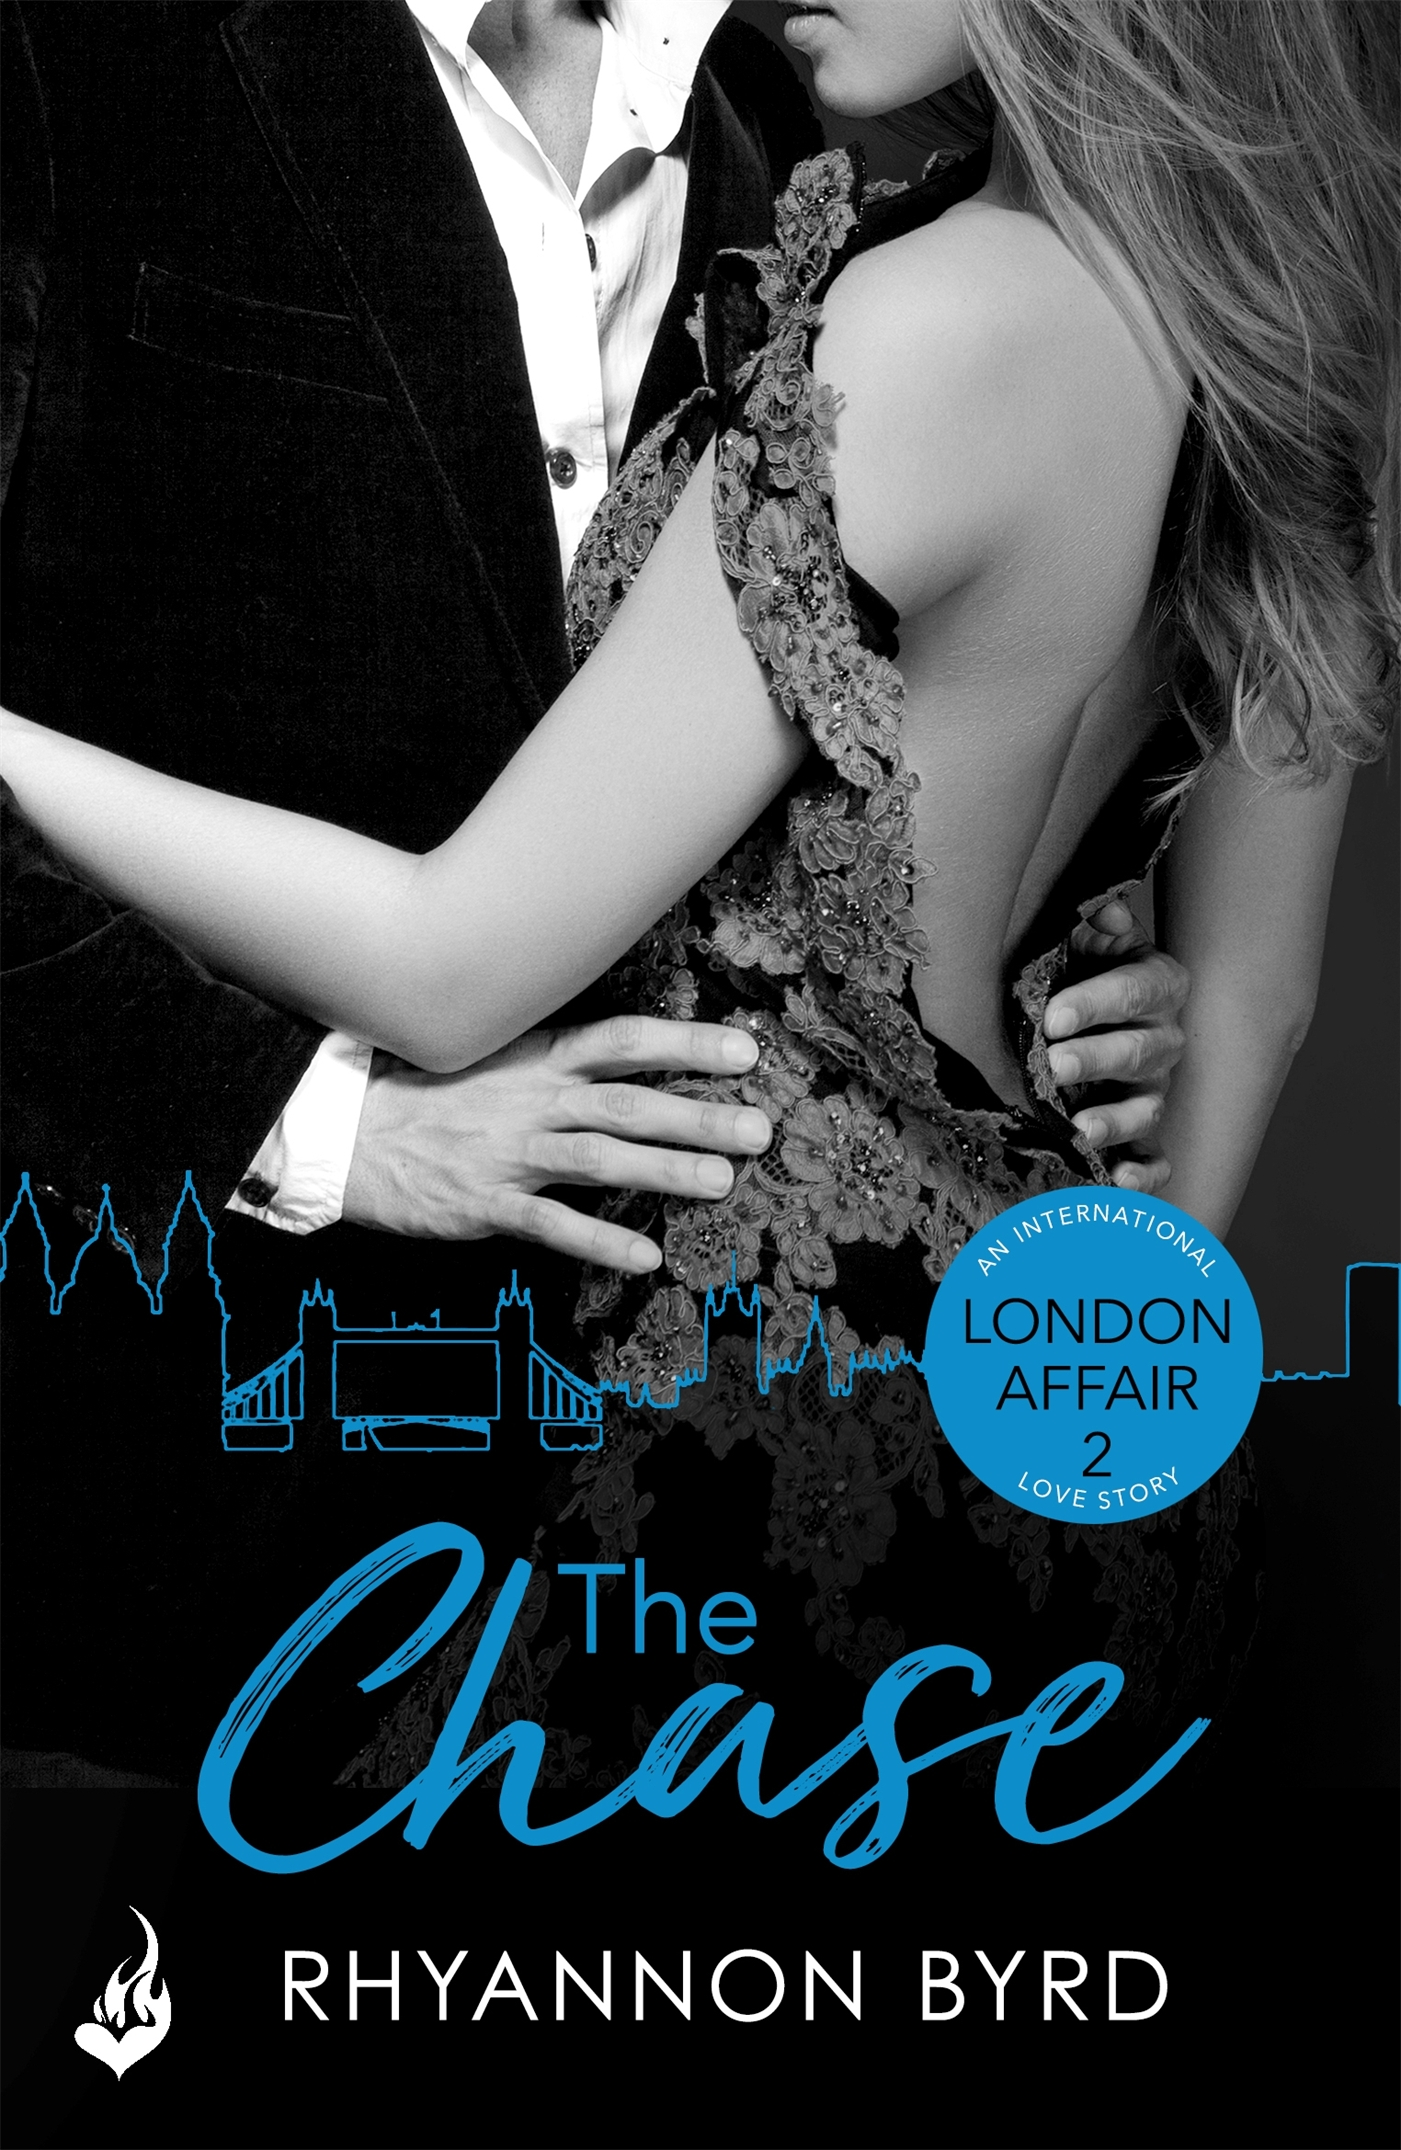 The Chase: London Affair Part 2